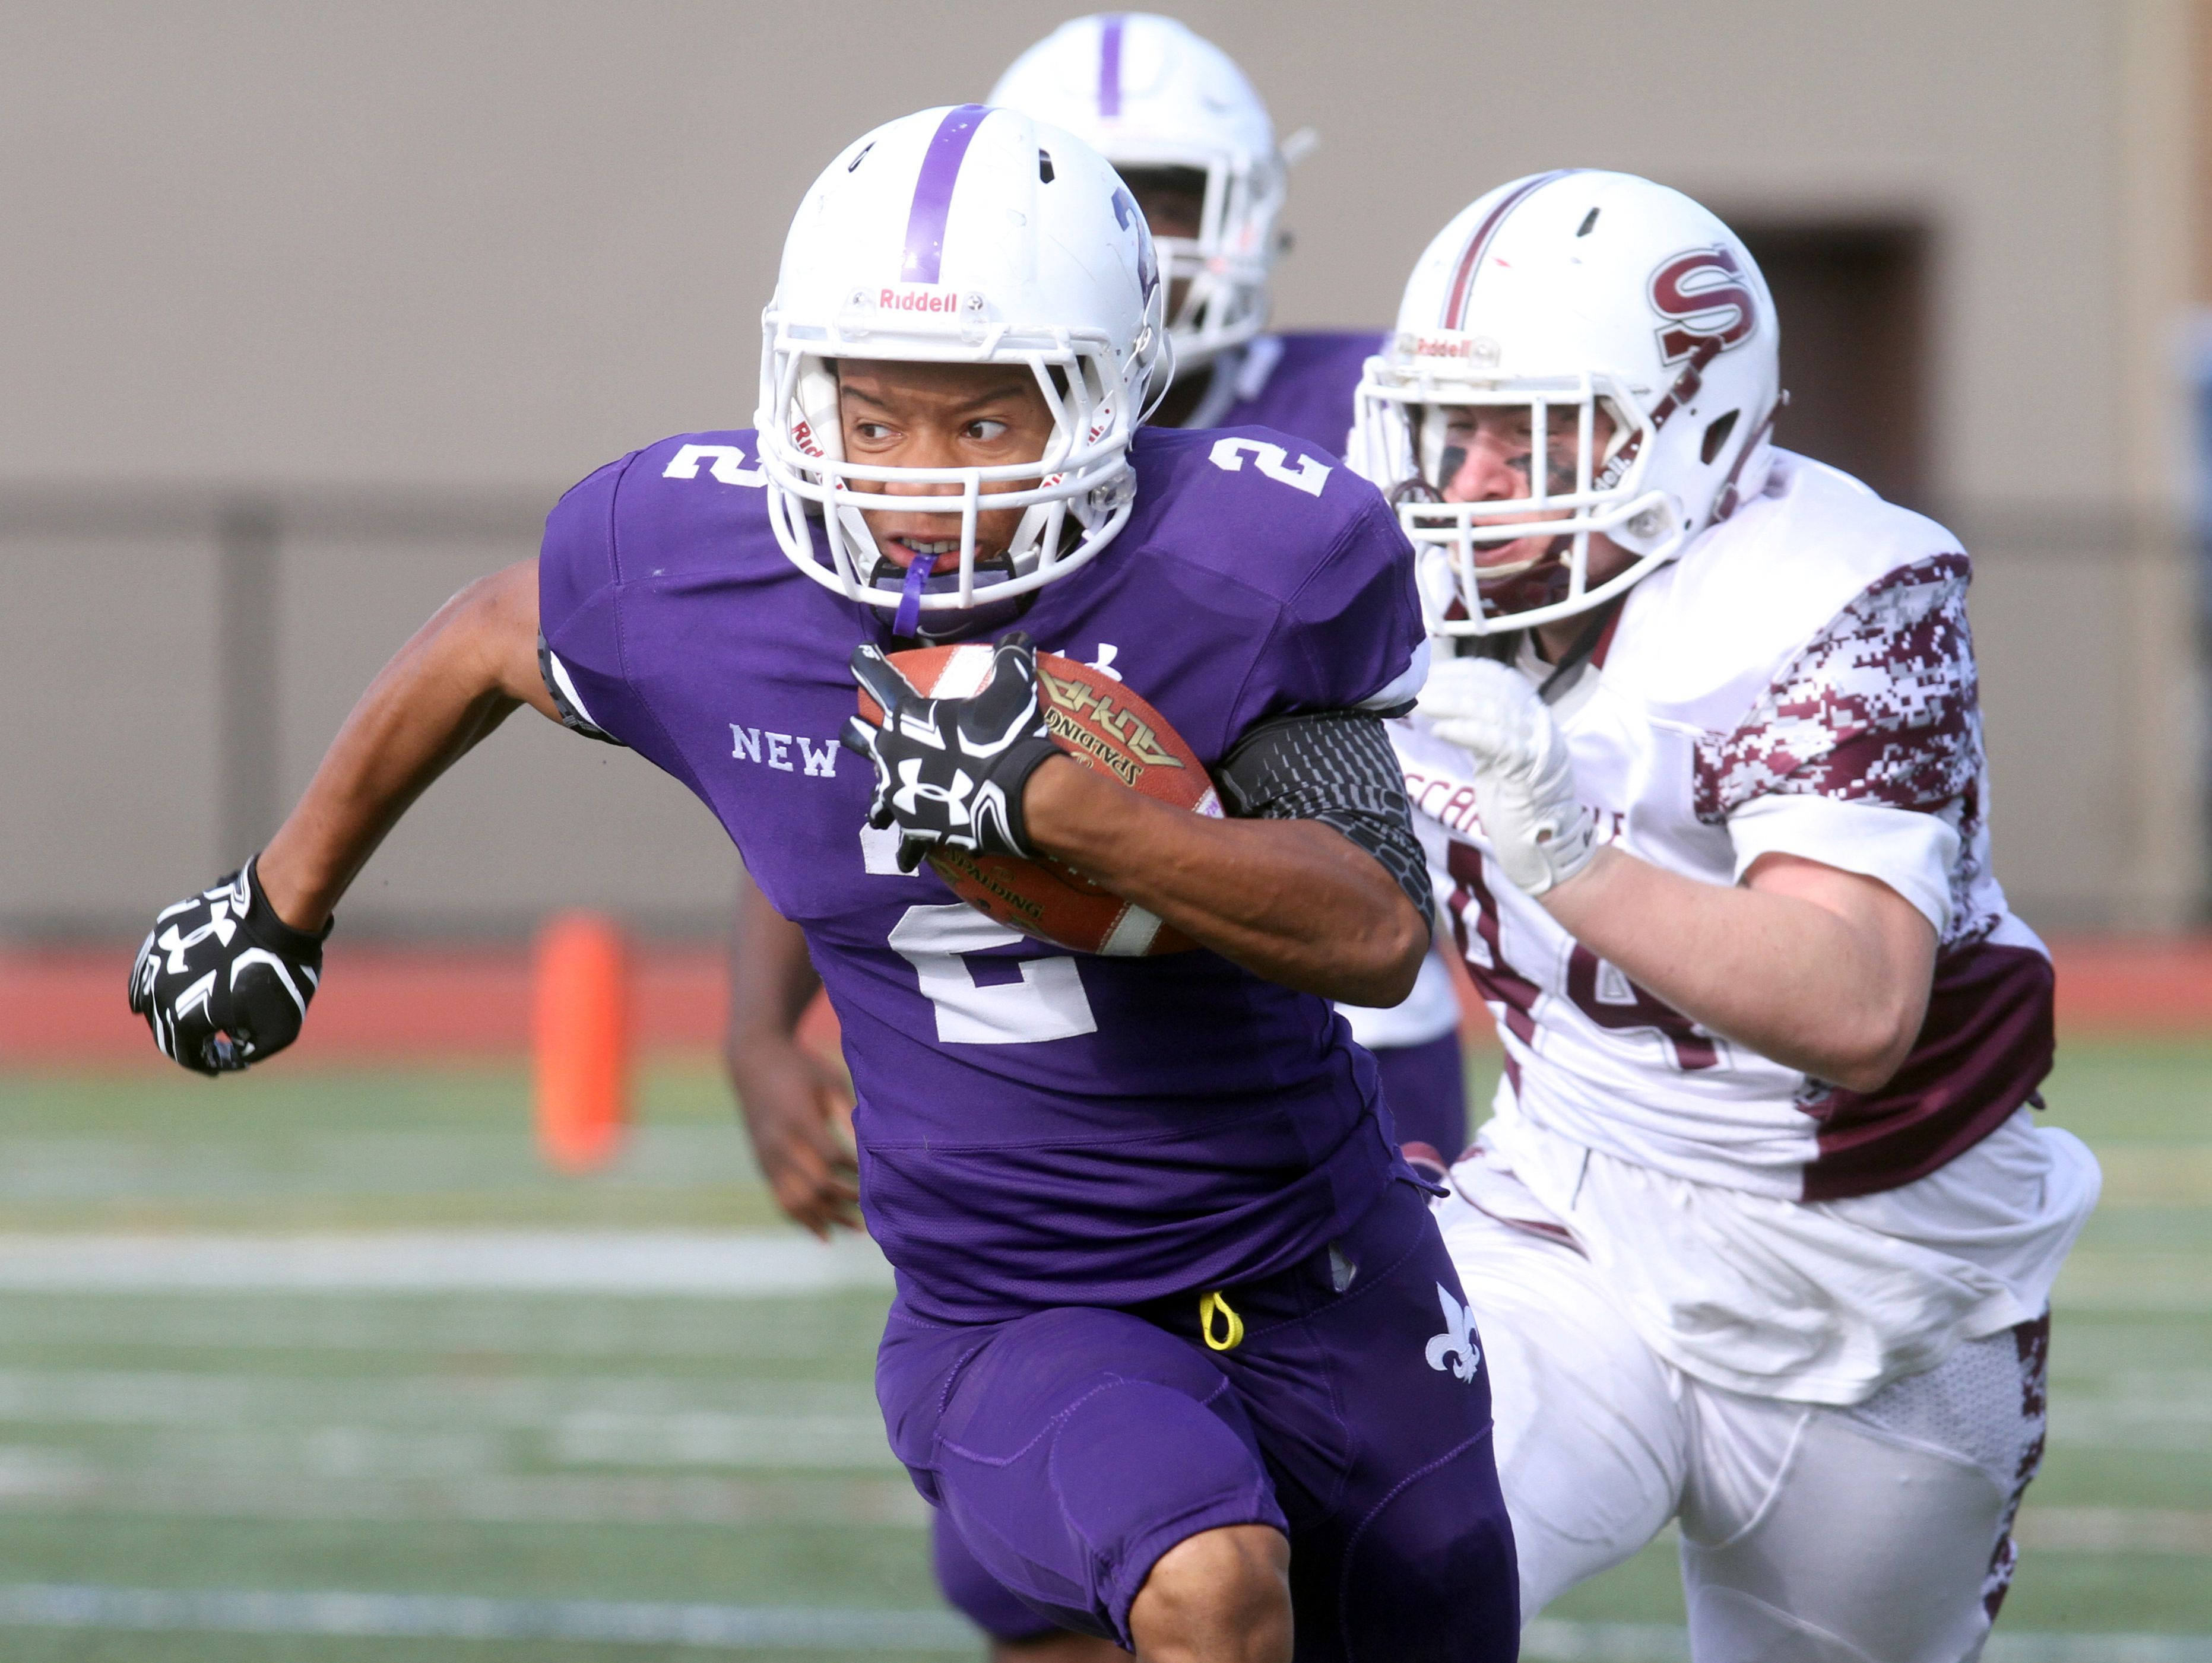 New Rochelle's Romeo Holden rushes during the Section 1 Class AA football championship against Scarsdale at Mahopac High School Nov. 6, 2016. Scarsdale defeated Scarsdale 41-13 in